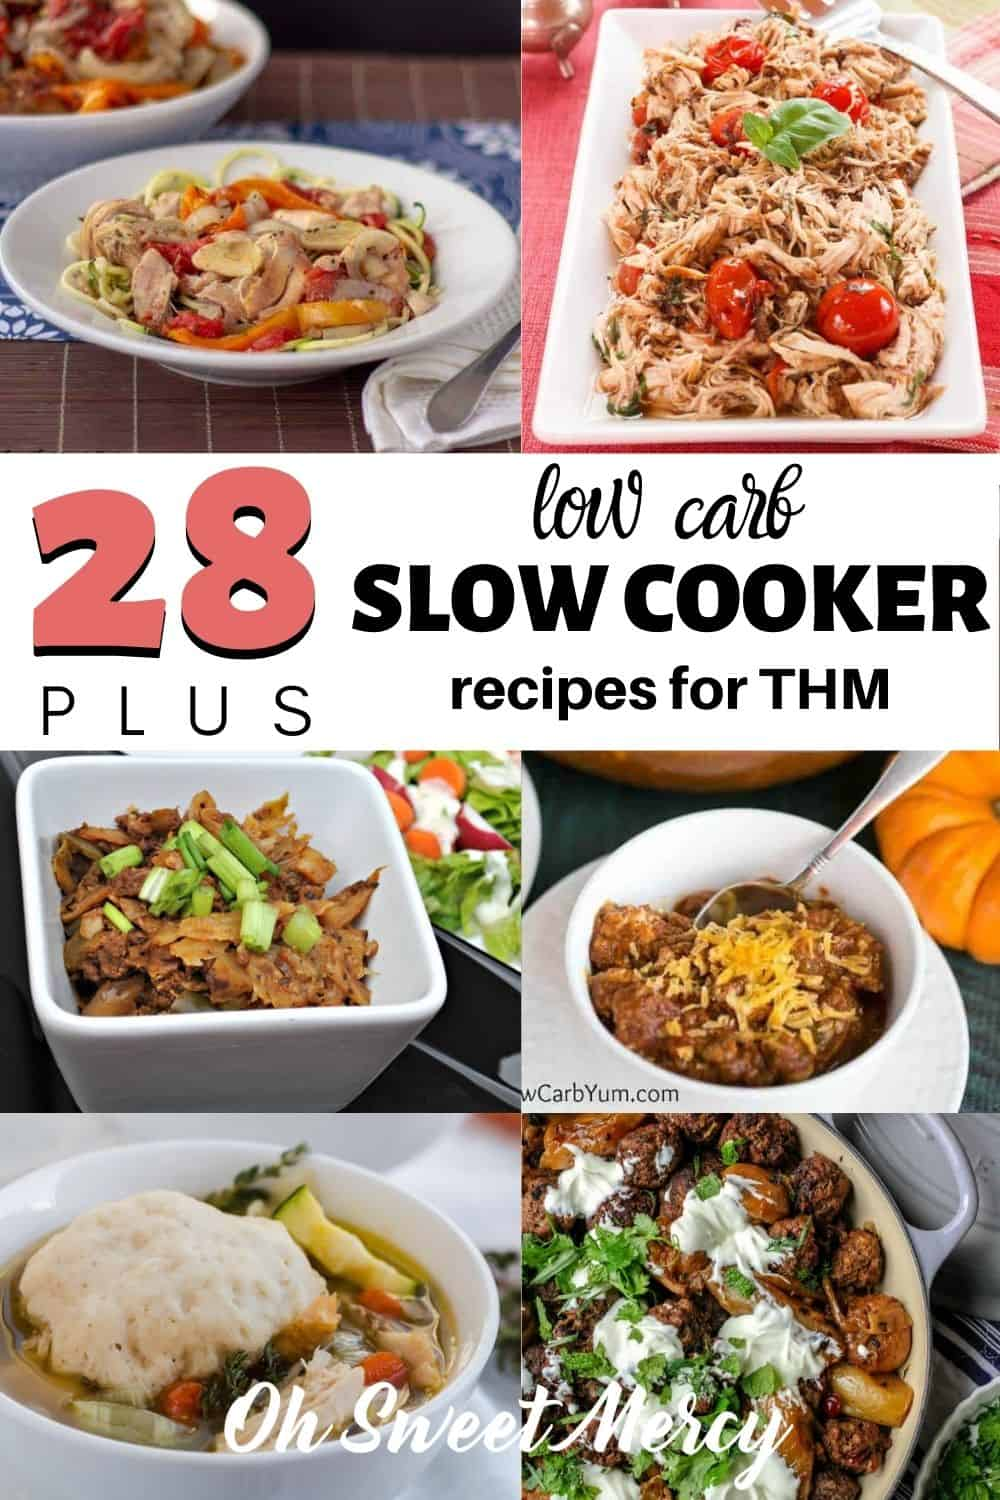 Grab your meal planning supplies and get these easy low carb slow cooker recipes on your menu for the month. Perfect for THM S meals, saving time, and even saving money. #lowcarb #slowcooker #crockpot #healthy #mealplanning #timesaver #thm @ohsweetmercy